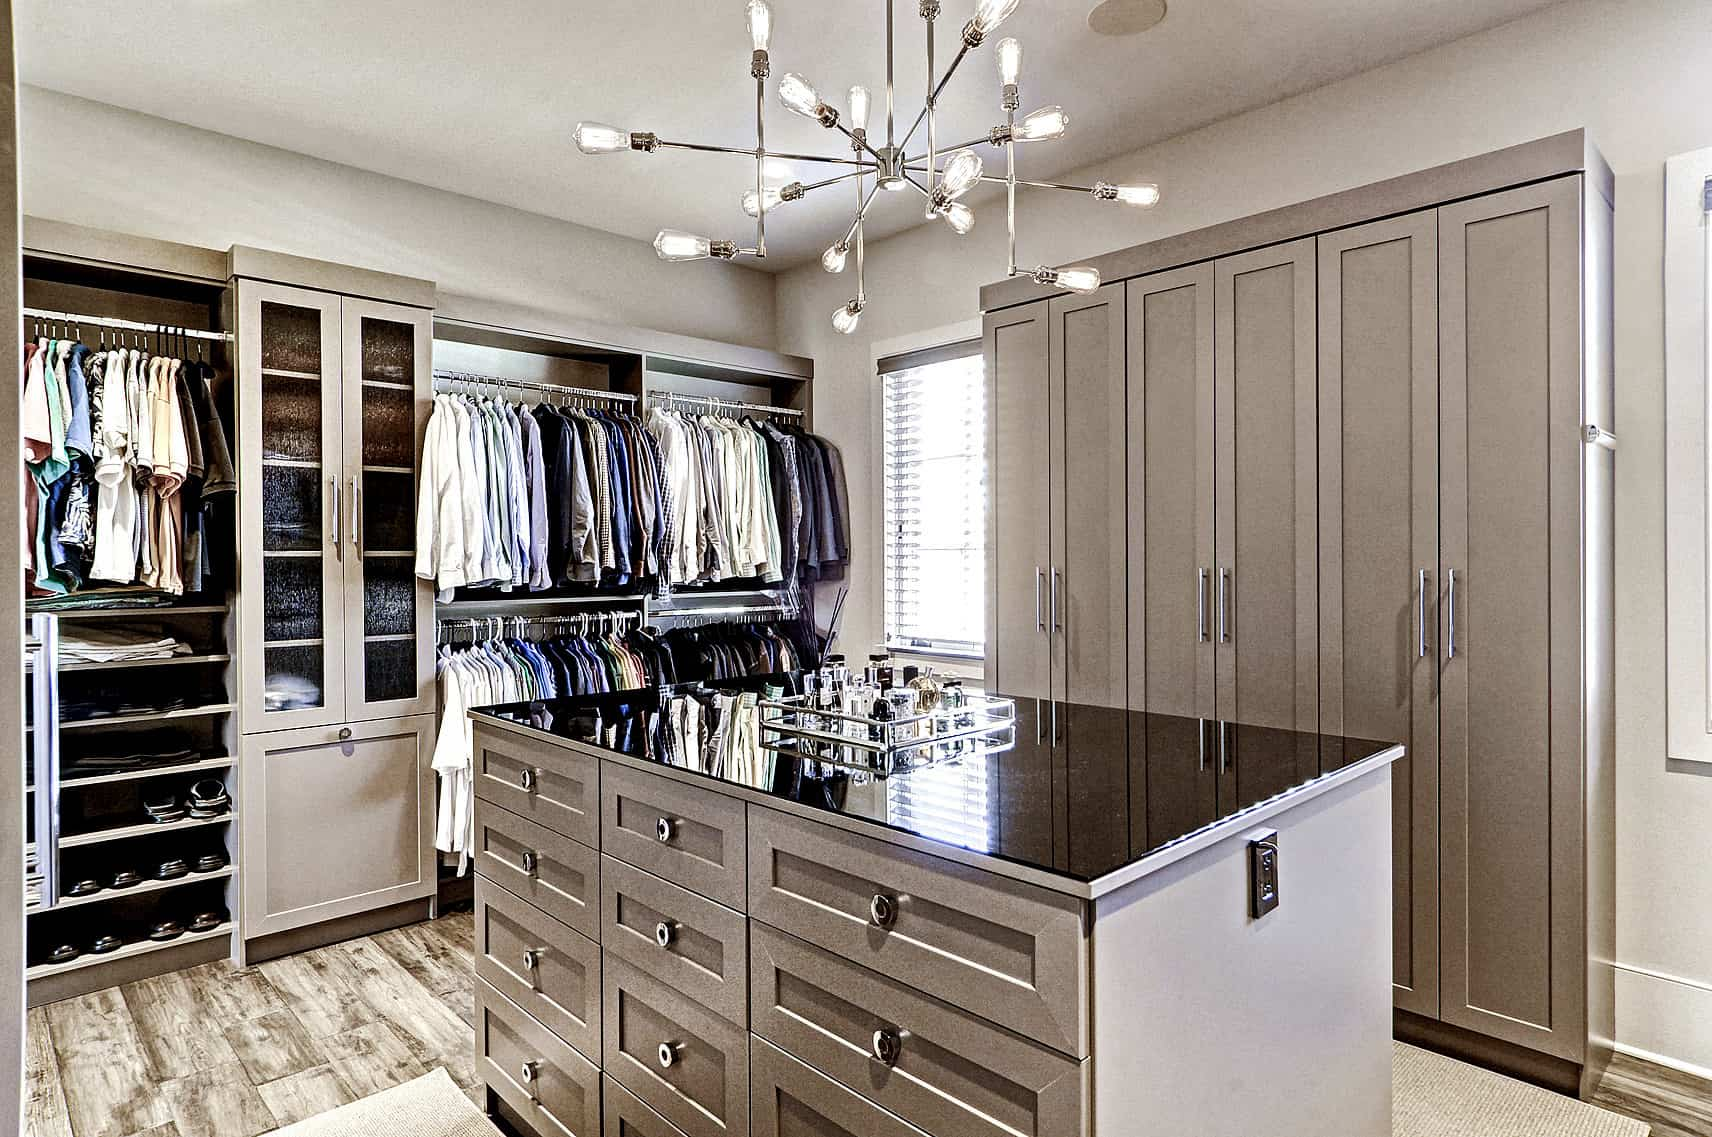 31 Stunning Closet Works Storage Designs And Projects